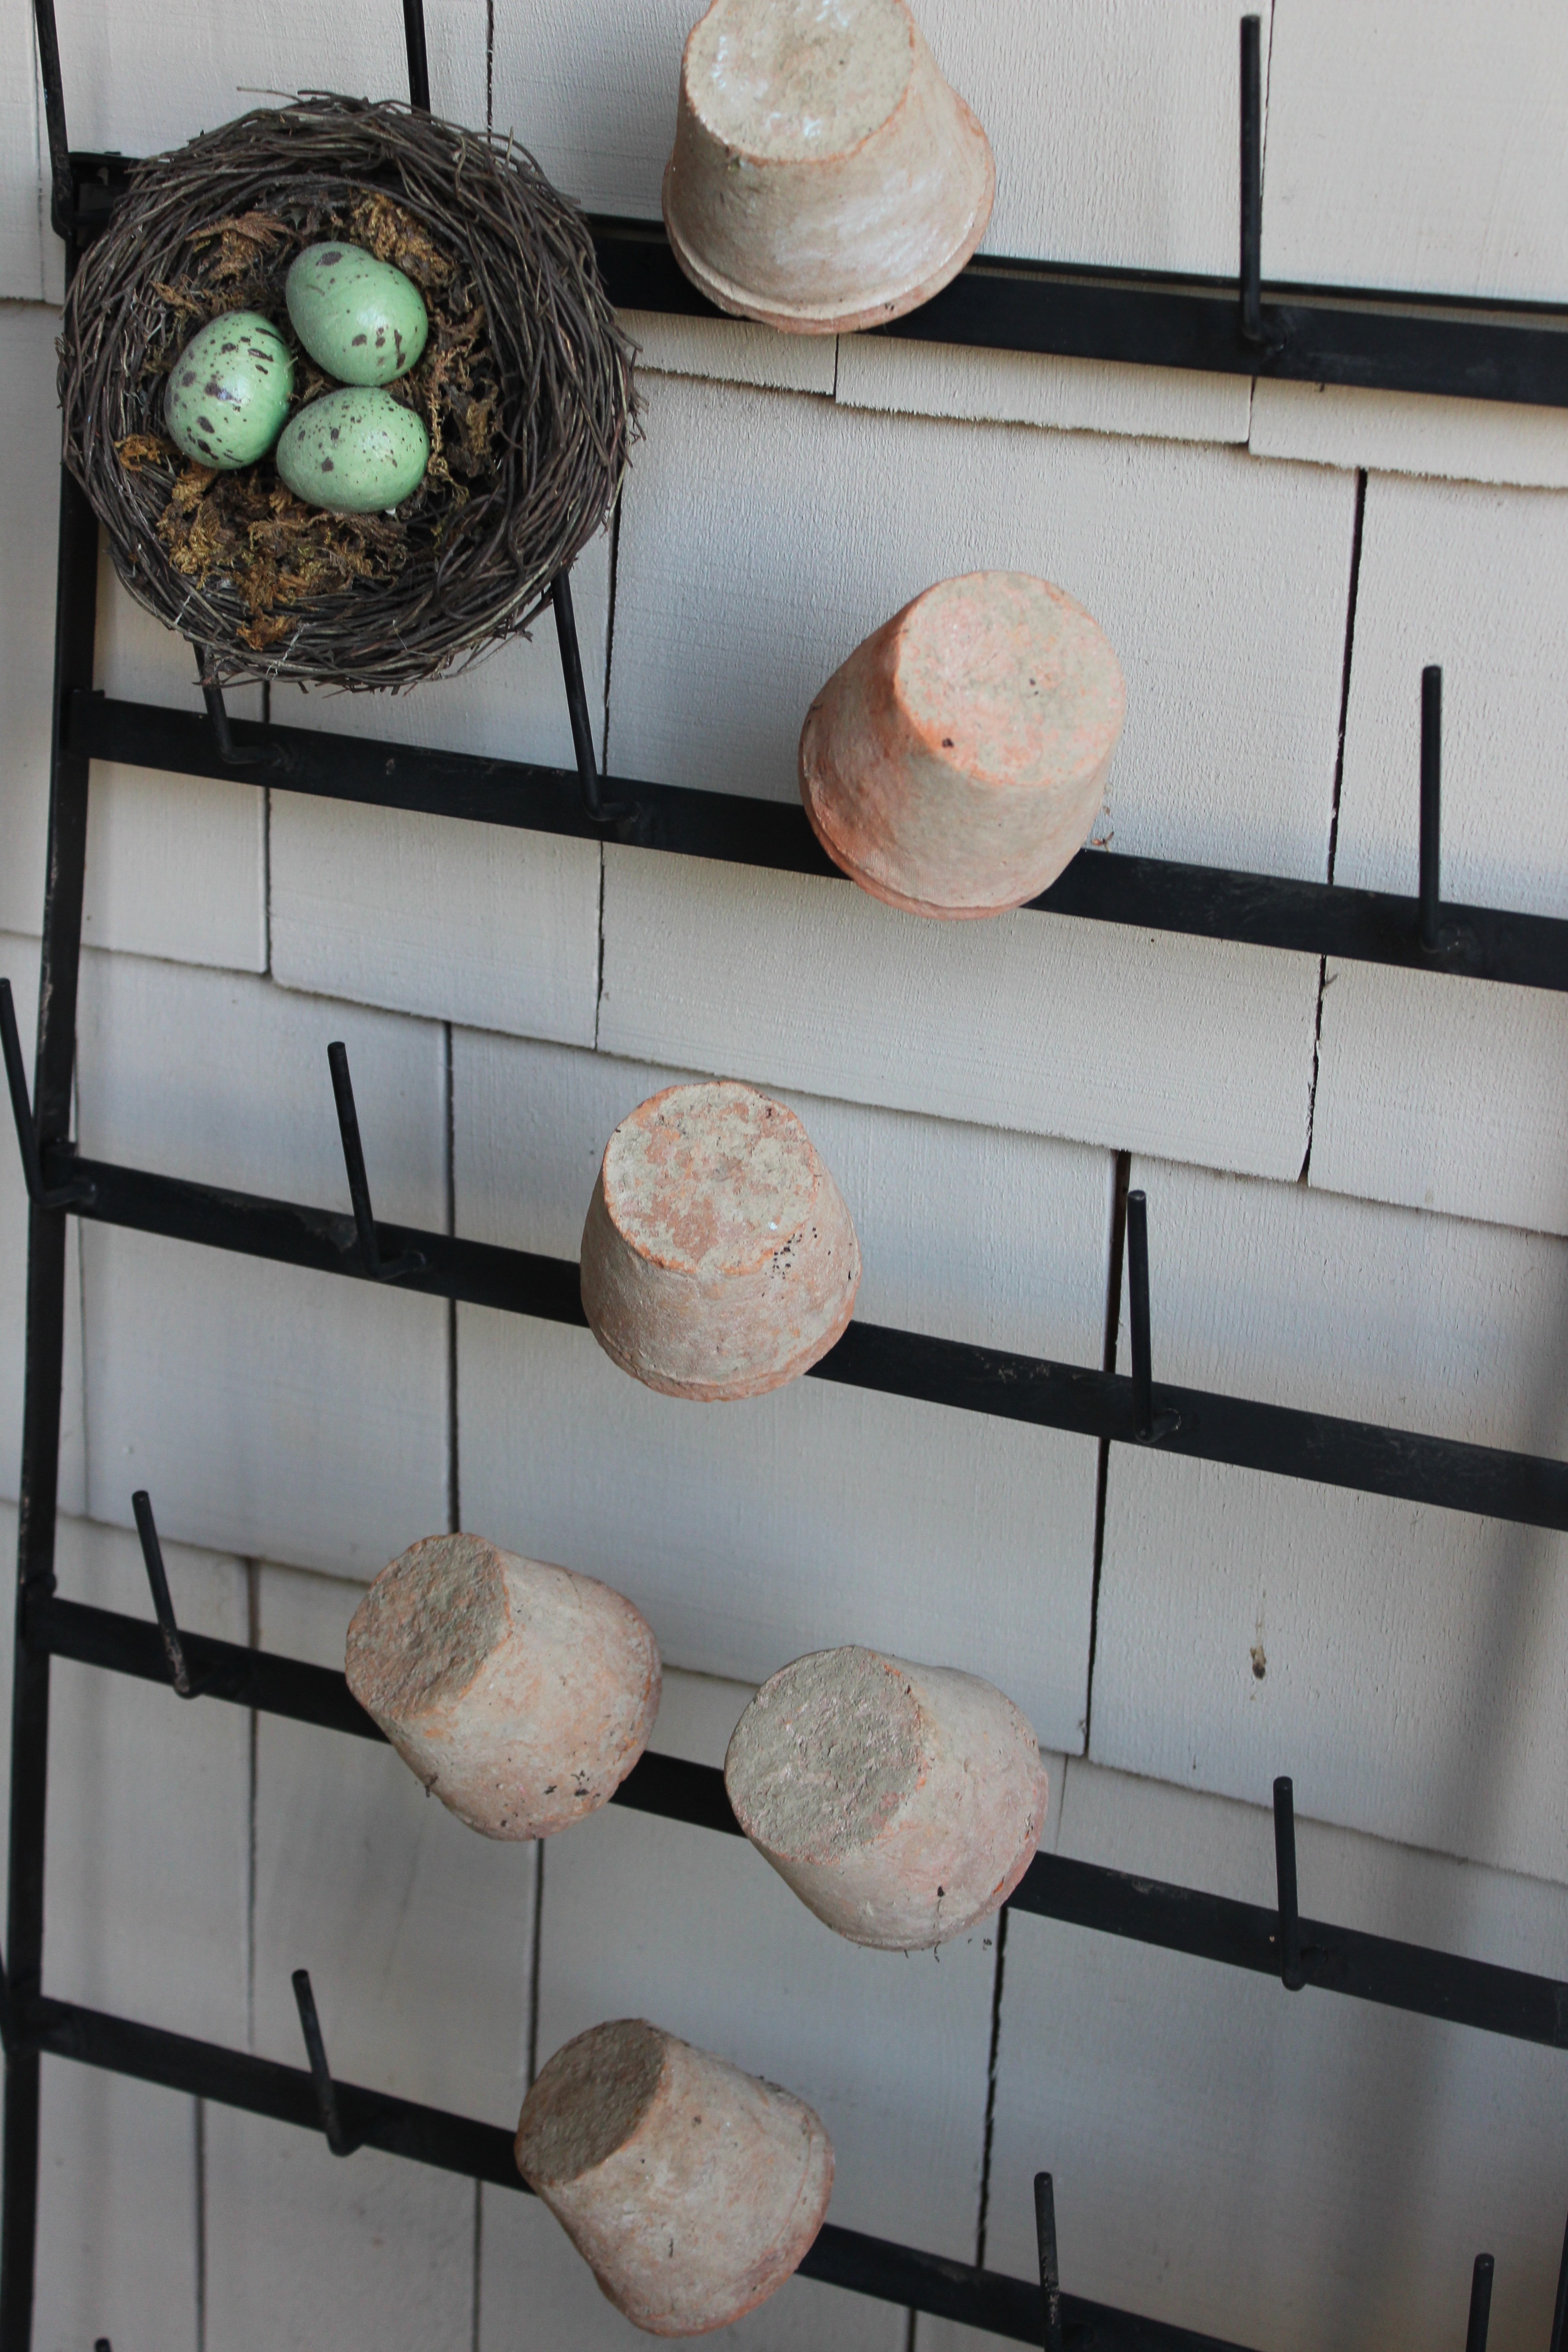 Decor steals design ingenuity event wall mounted drying rack for Decor steals